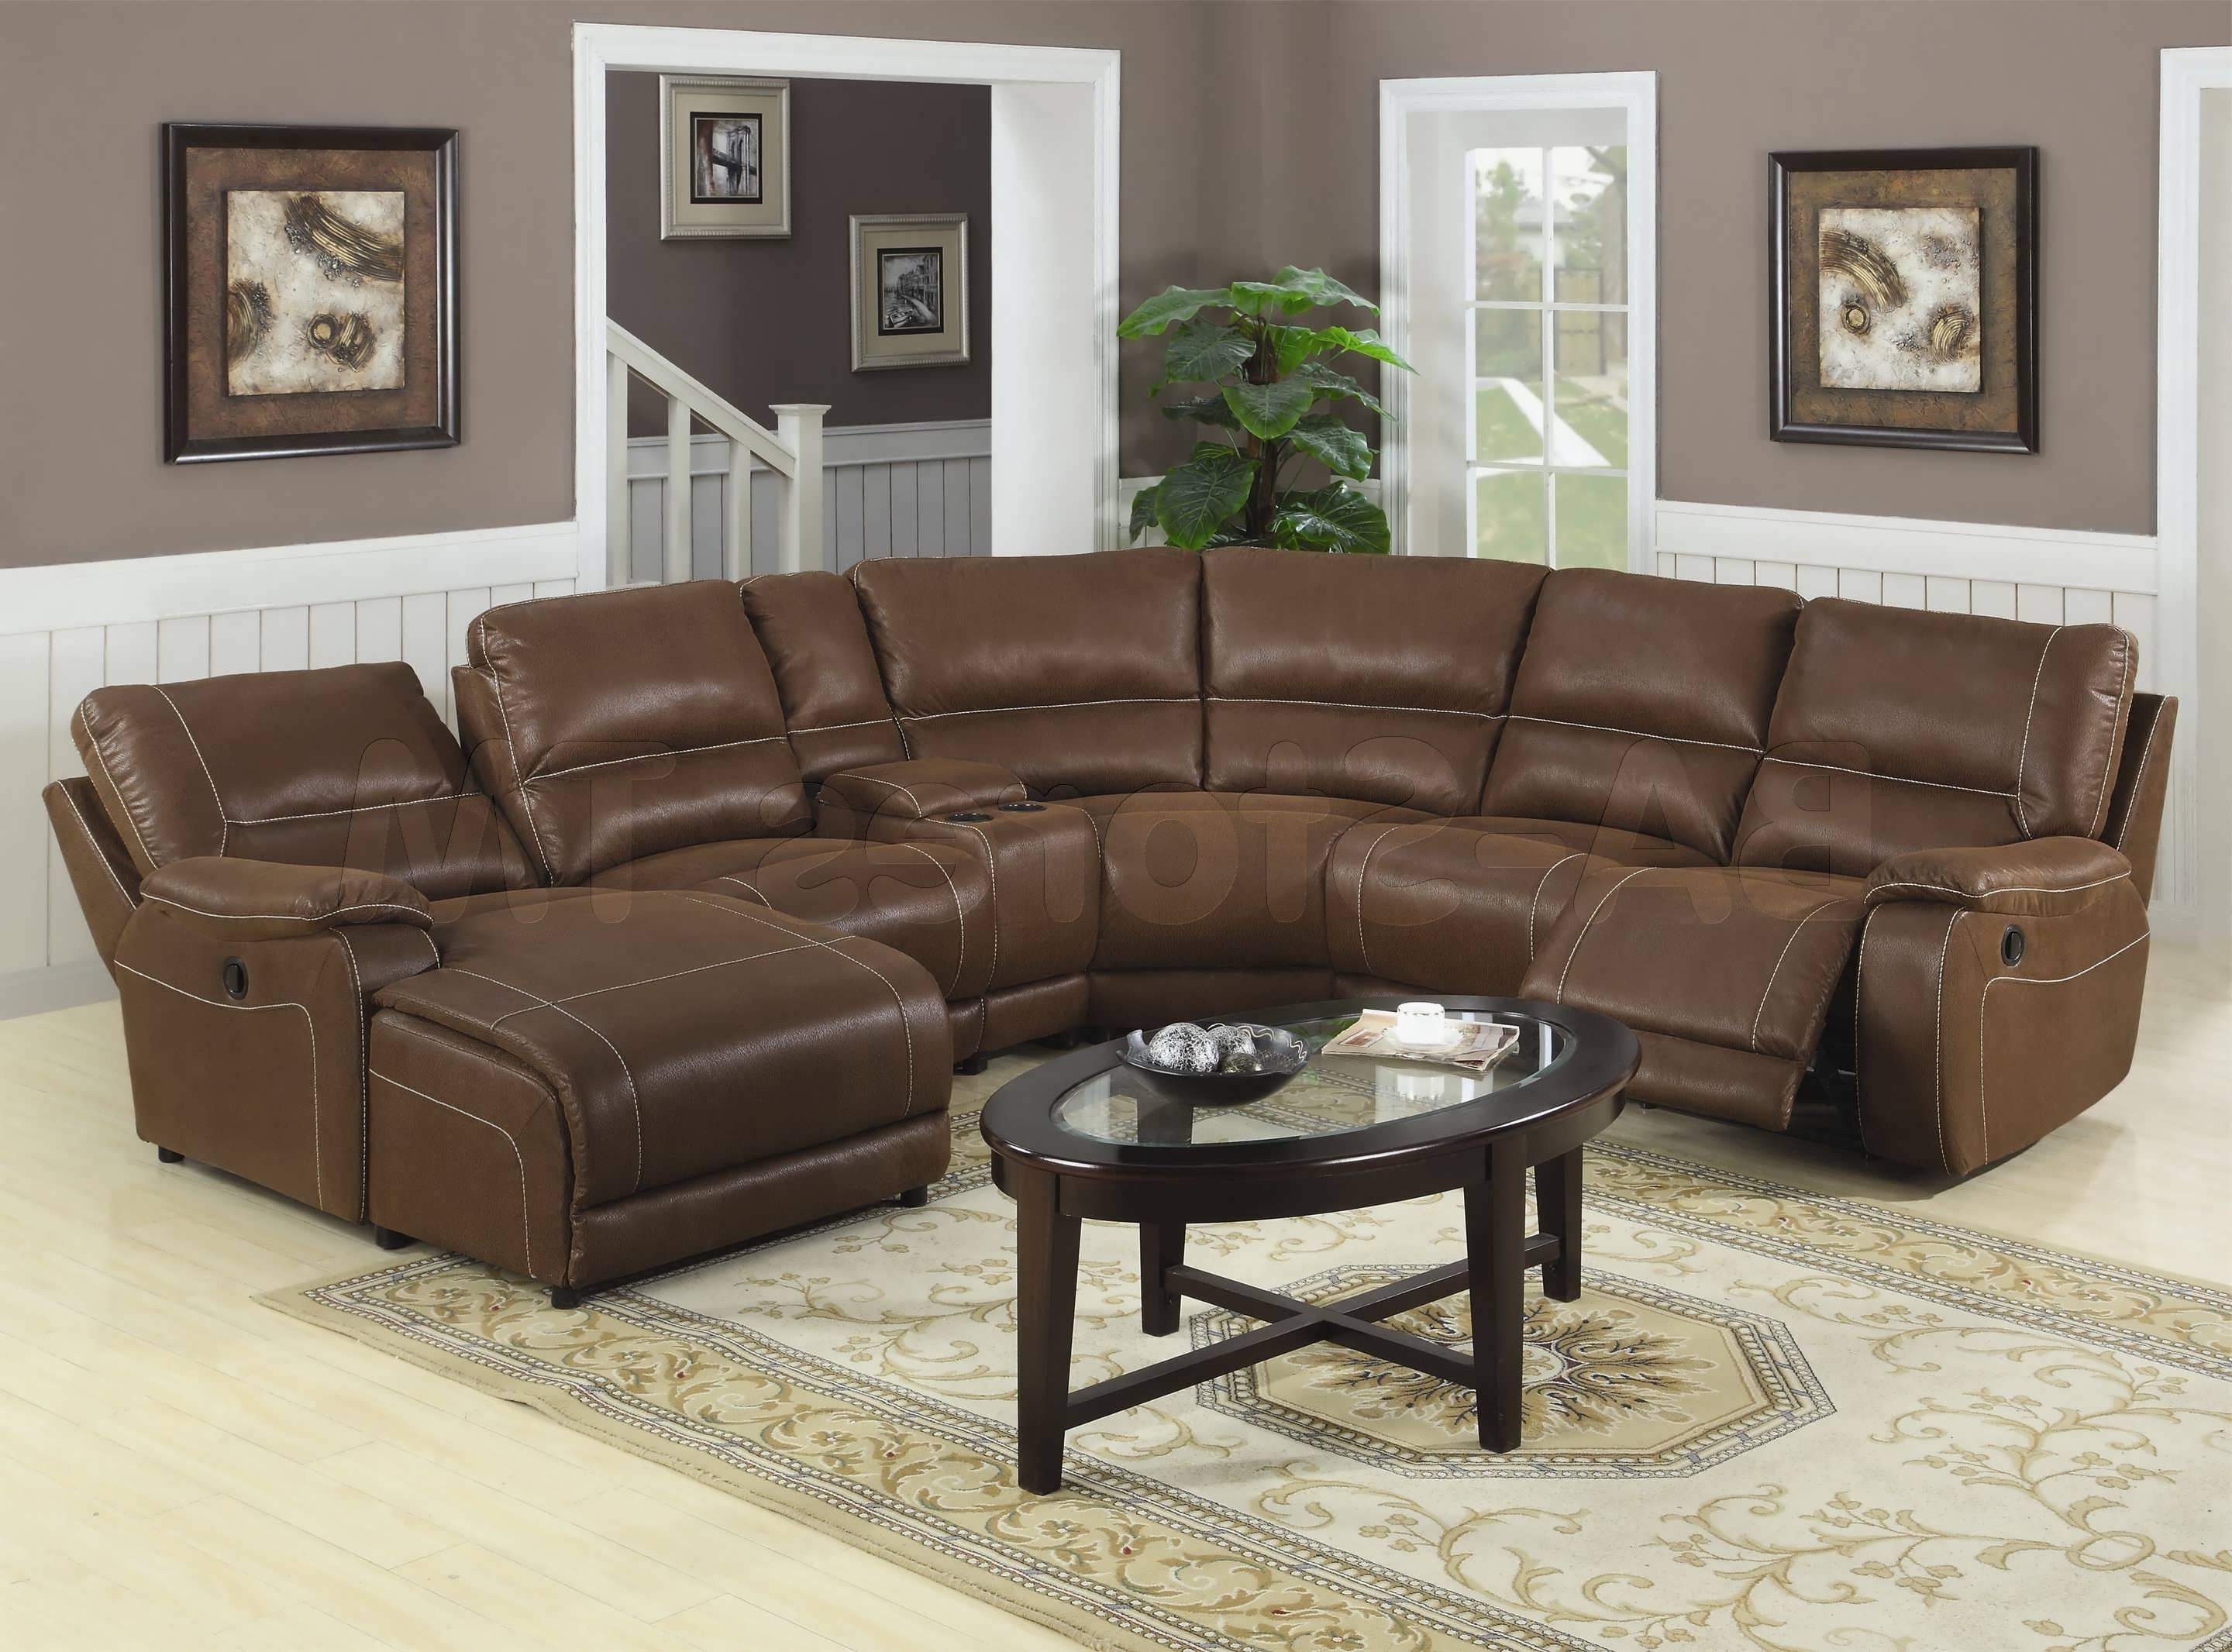 Sectional Sofas With Recliners Pertaining To Well Known Recliners Chairs & Sofa : Fold Out Couch Sectional Sofas With (View 8 of 15)